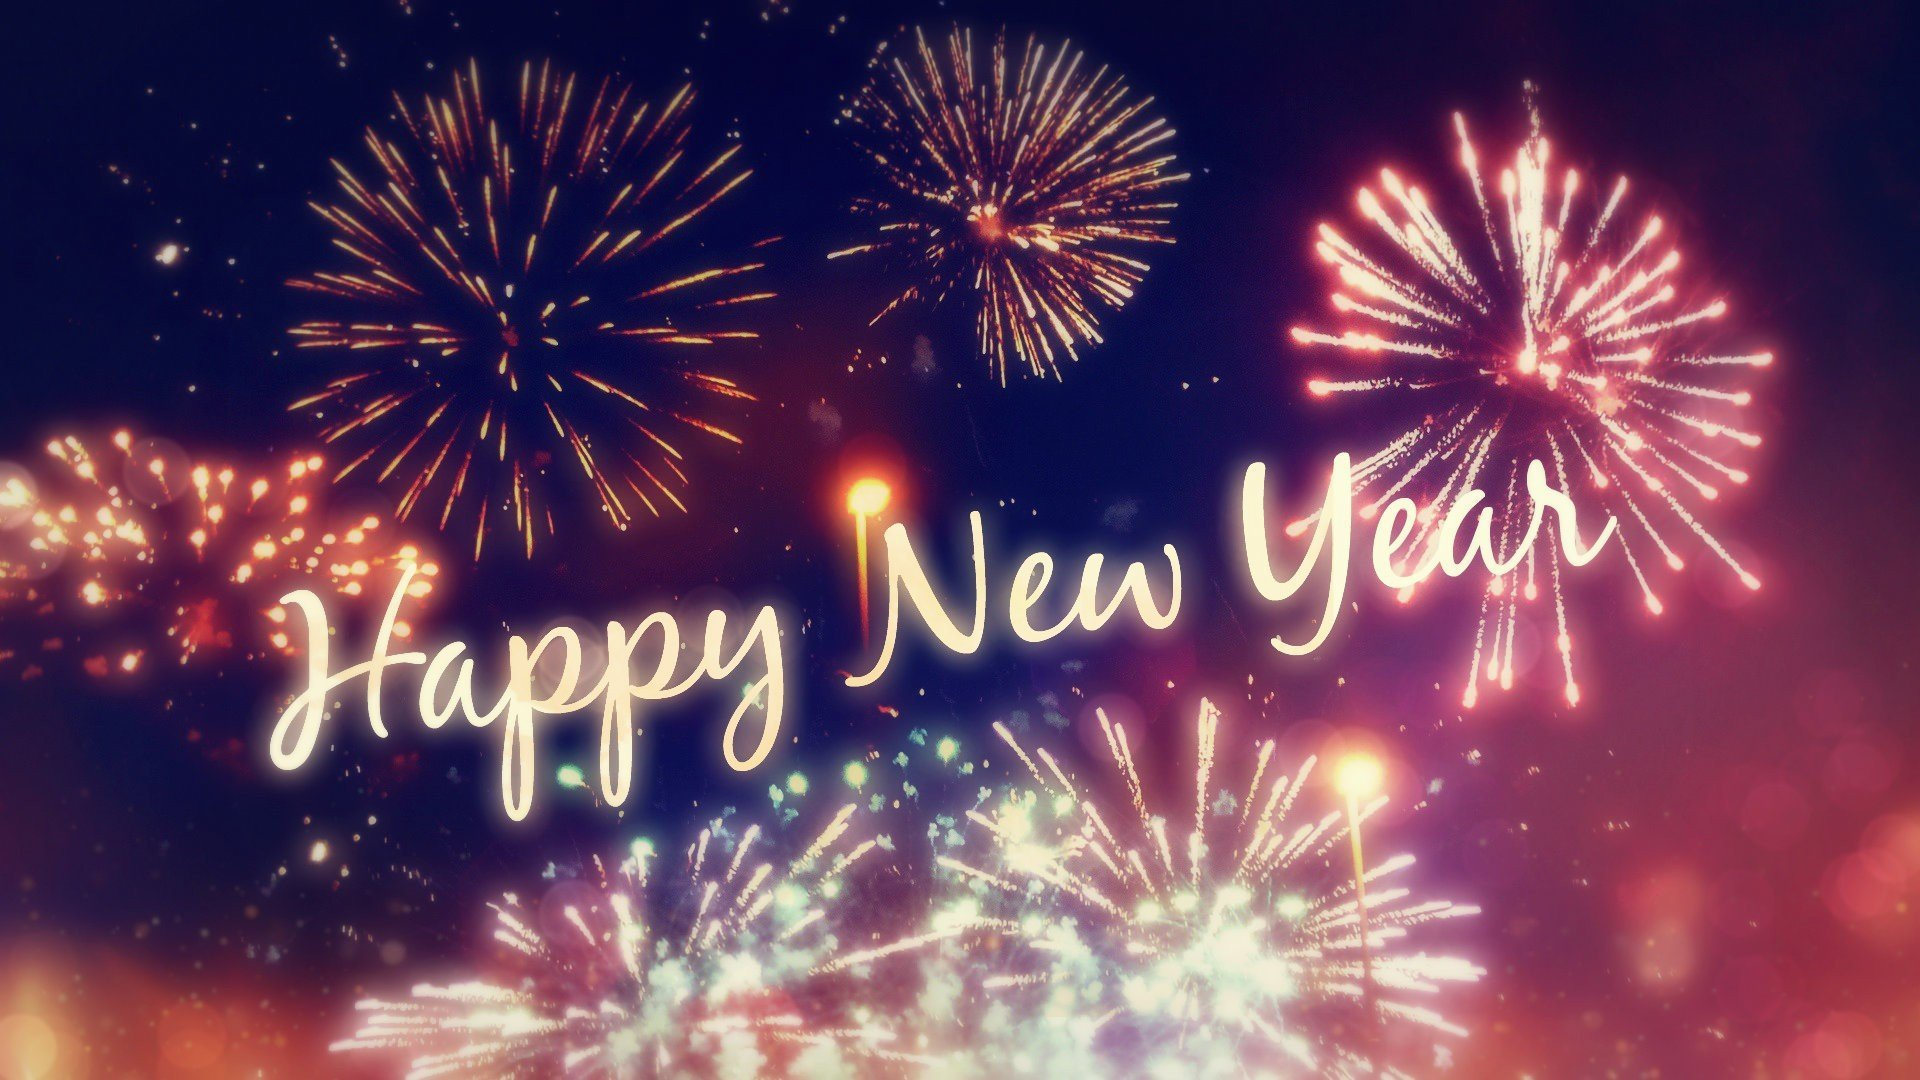 high resolution new year full hd 1920x1080 background id456611 for desktop